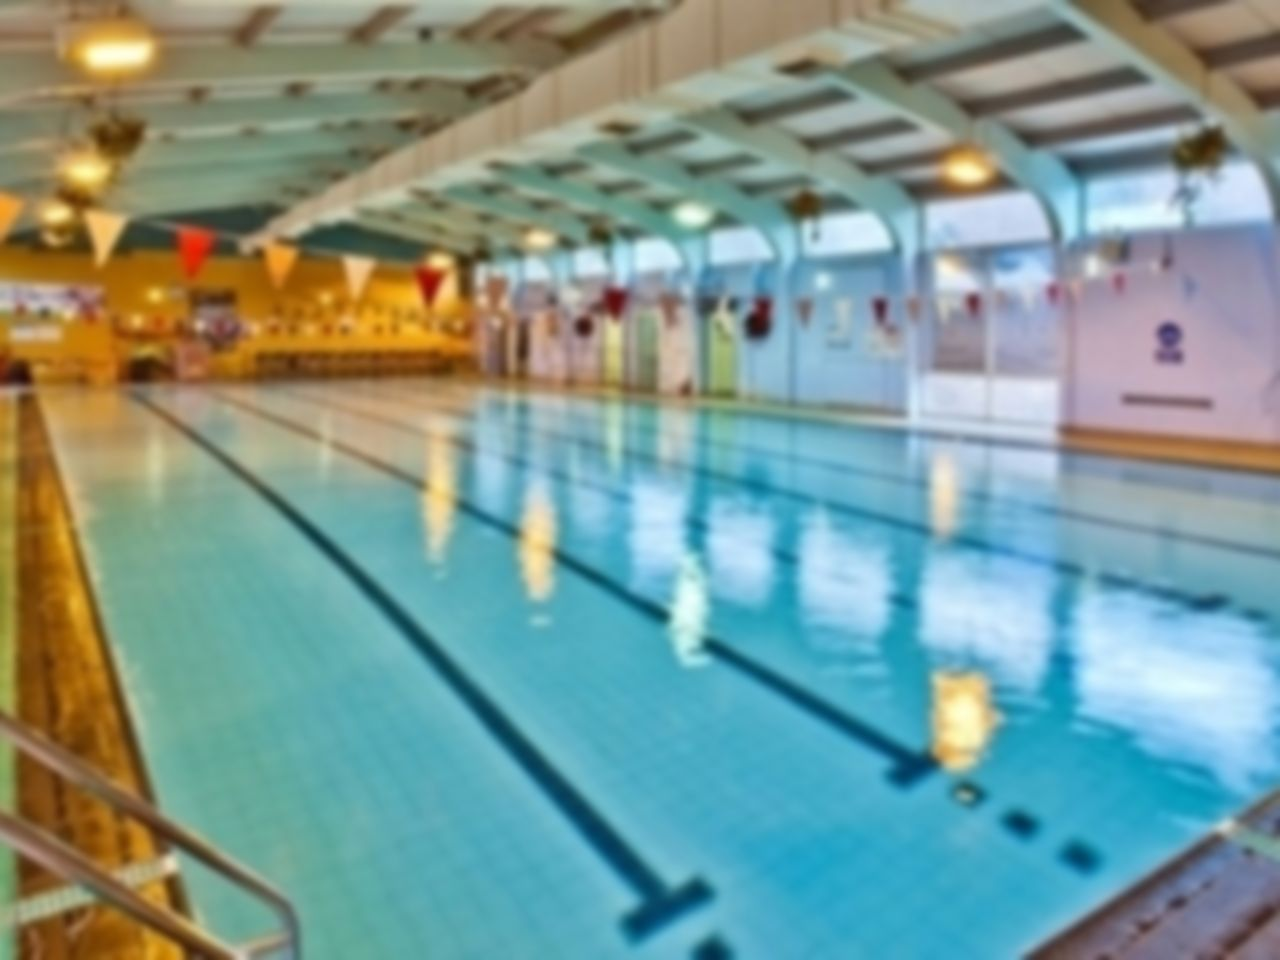 Graves tennis leisure centre flexible gym passes s8 - Westfield swimming pool sheffield ...